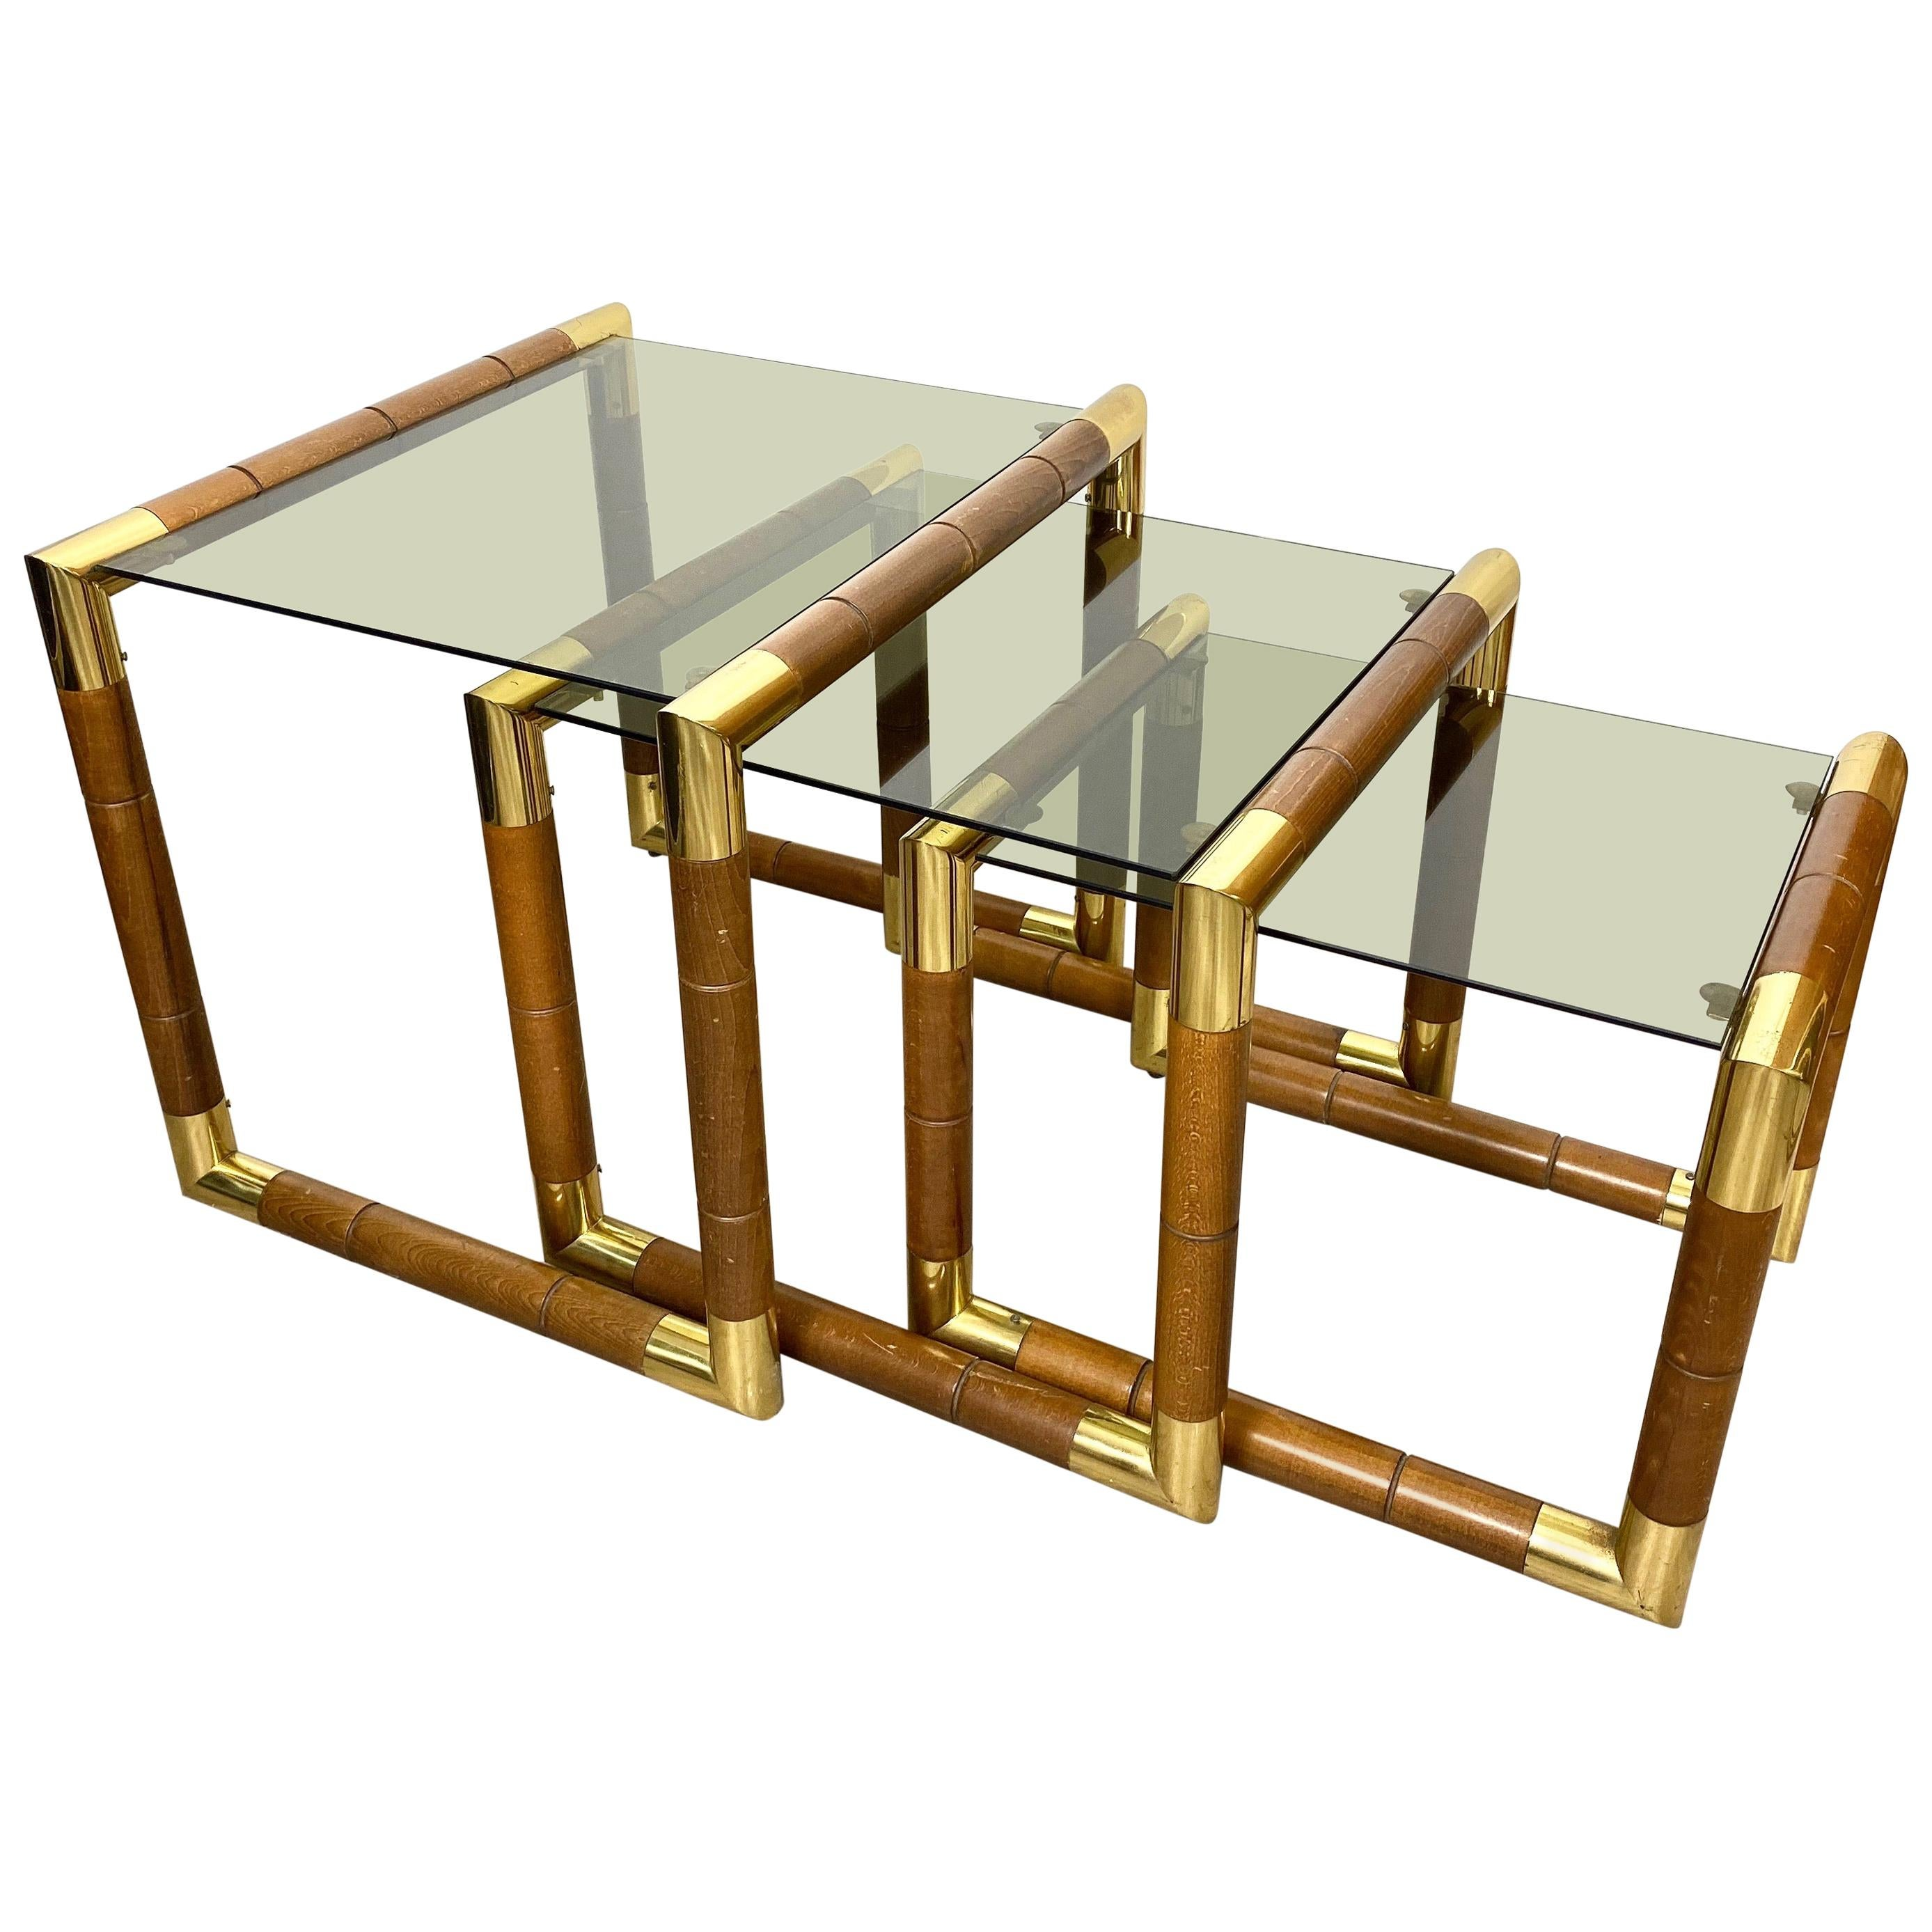 Set of Nesting Table in Wood, Brass and Glass, Italy, 1970s